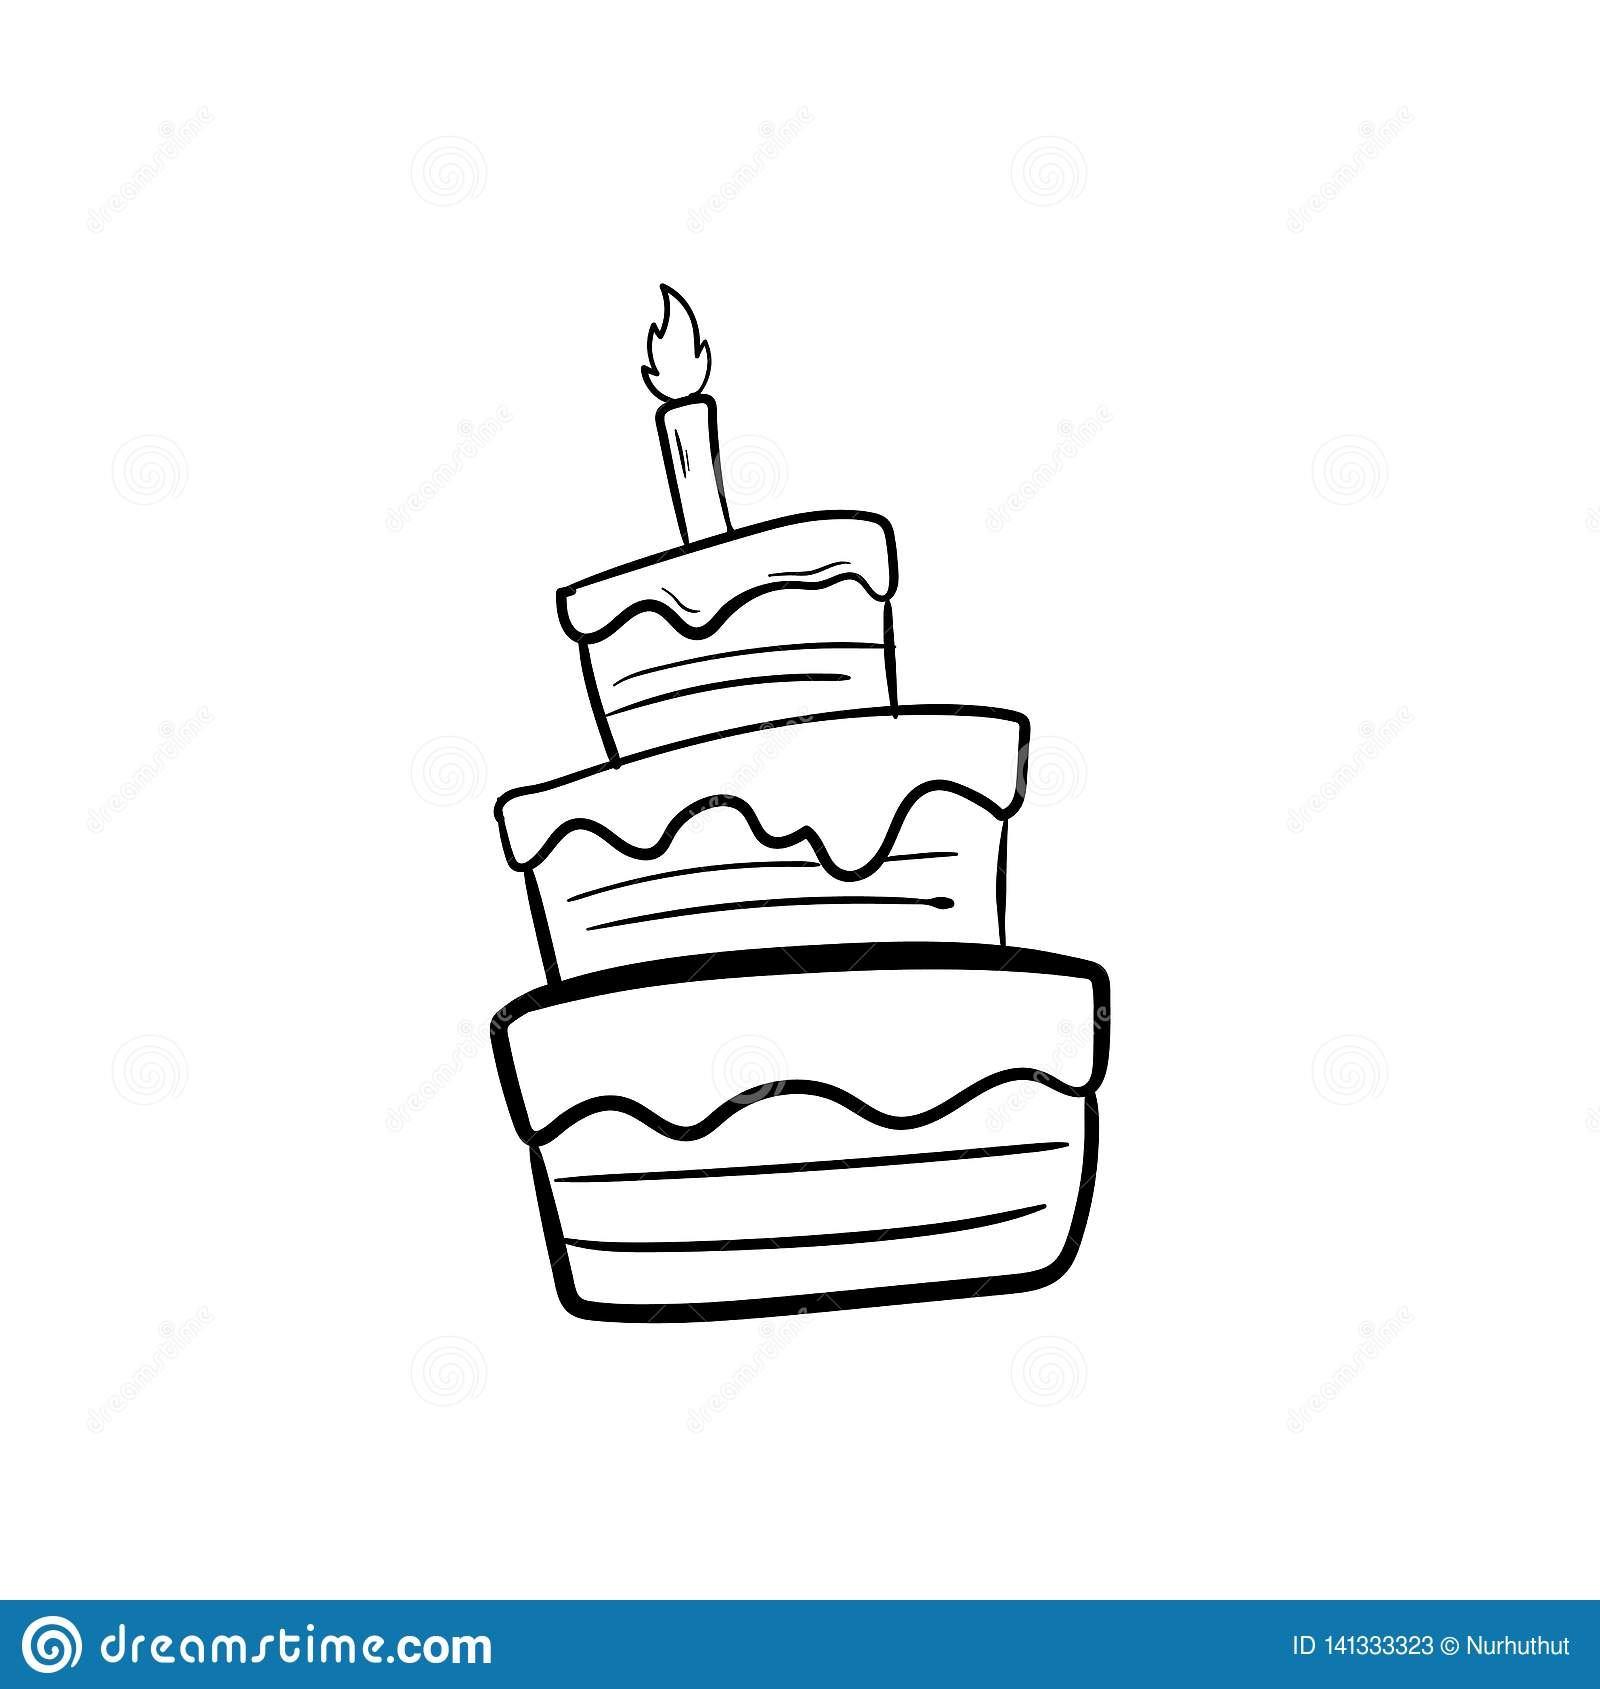 Tremendous Birthday Cake With Outline Using Doodle Art Stock Vector Birthday Cards Printable Trancafe Filternl